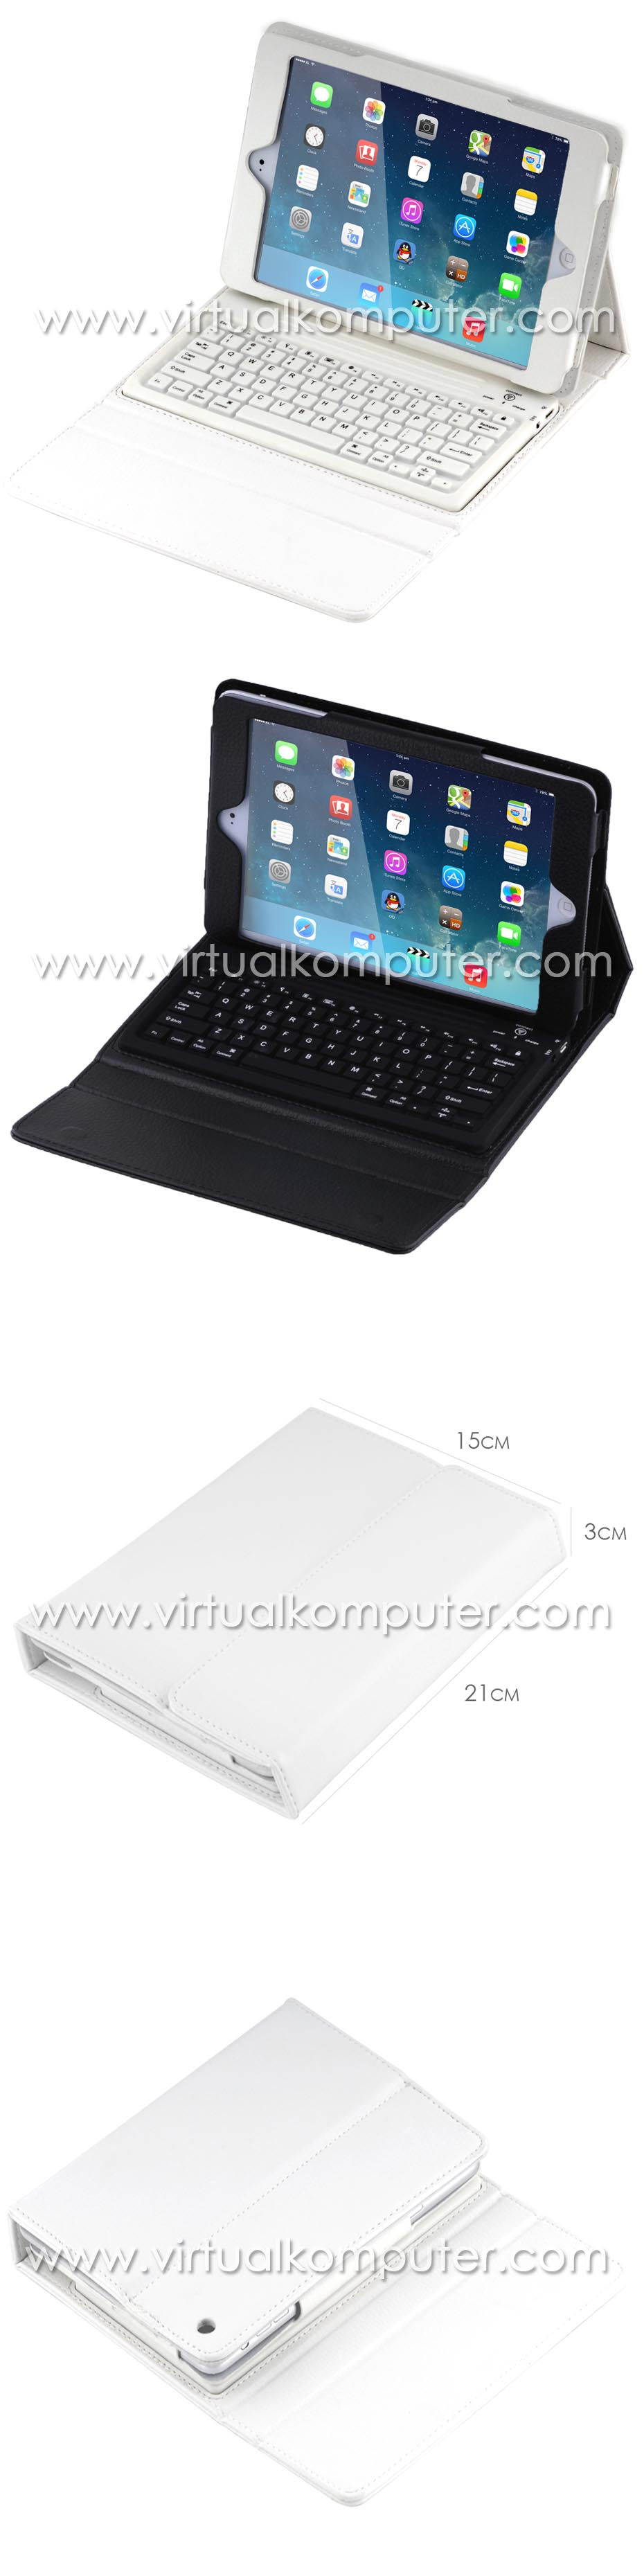 Keyboard Case for iPad Air Overview